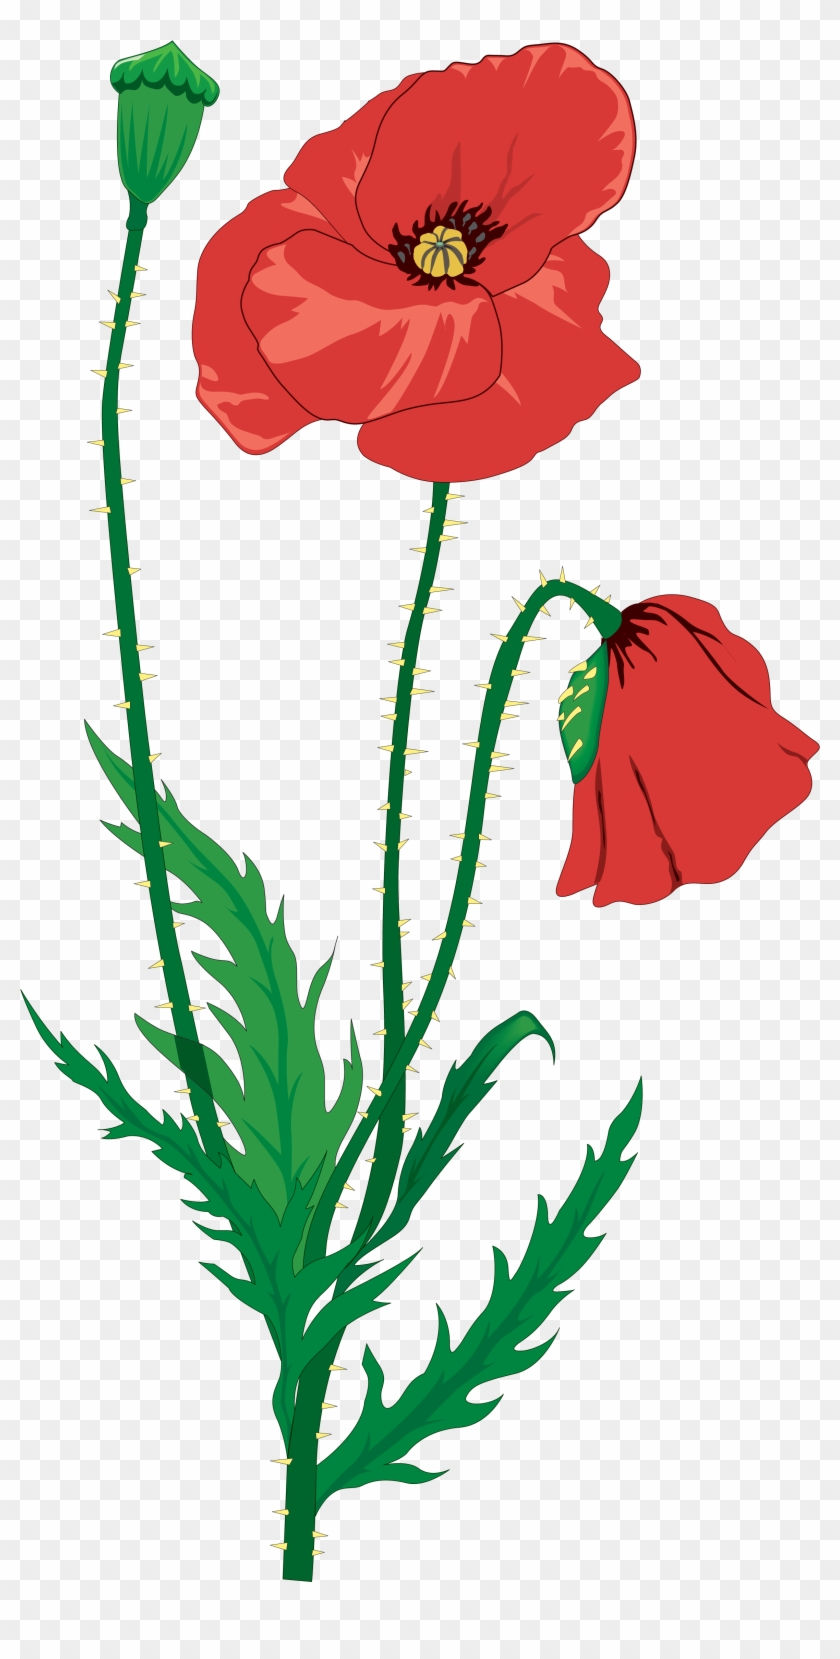 Drawing Flower Clip Art - Memorial Day And Poppies #104635